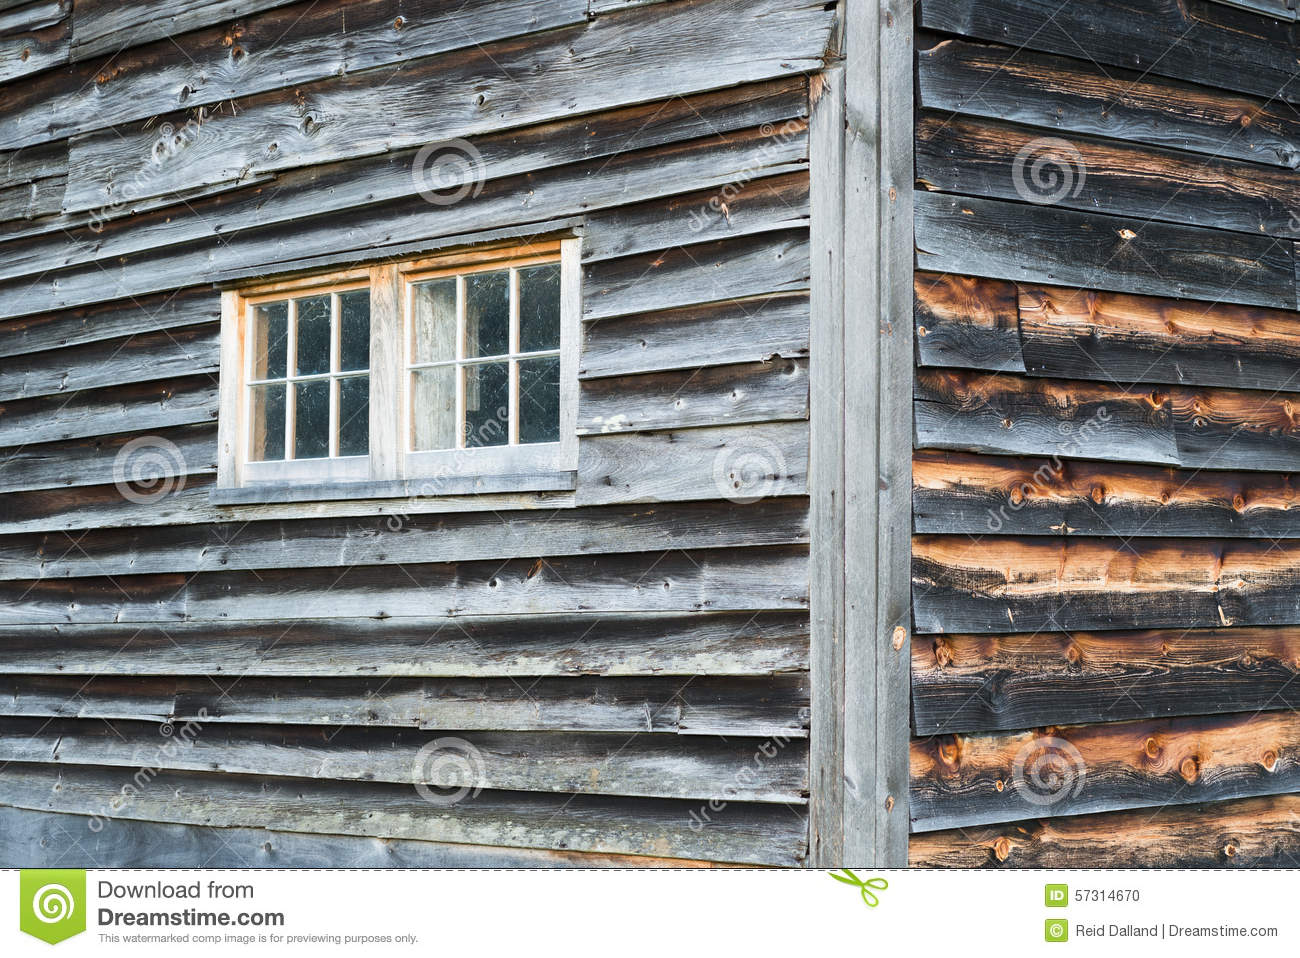 Weathered Barn Wood : ... : Corner of Weathered Barn Wall with Windows and Rustic Wood Siding